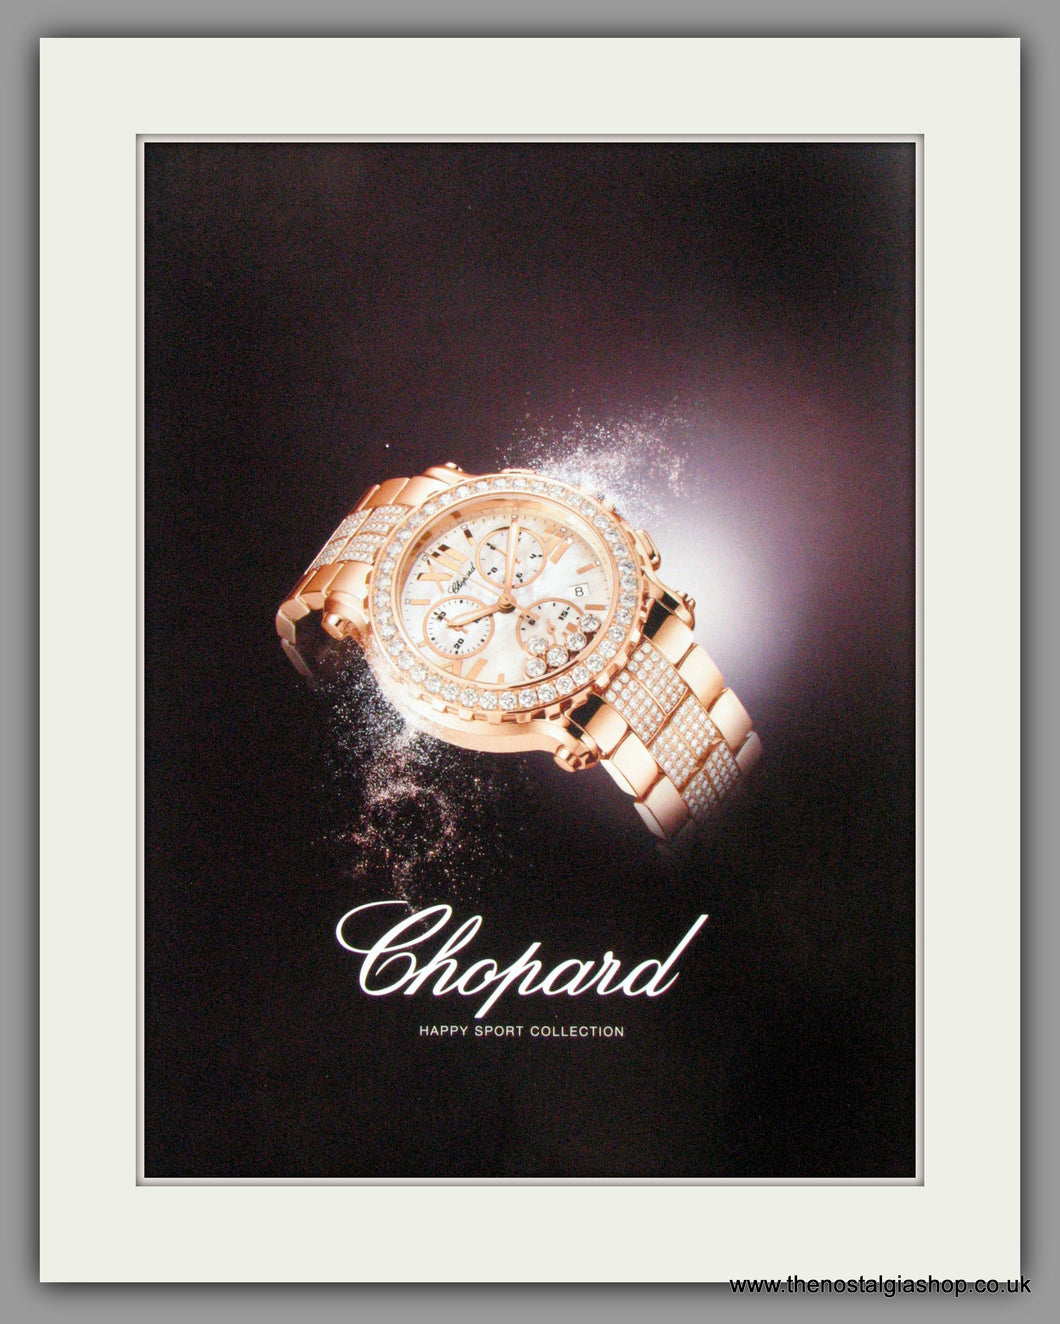 Chopard Watches Happy Sport Collection. Original Advert 2009 (ref AD50119)